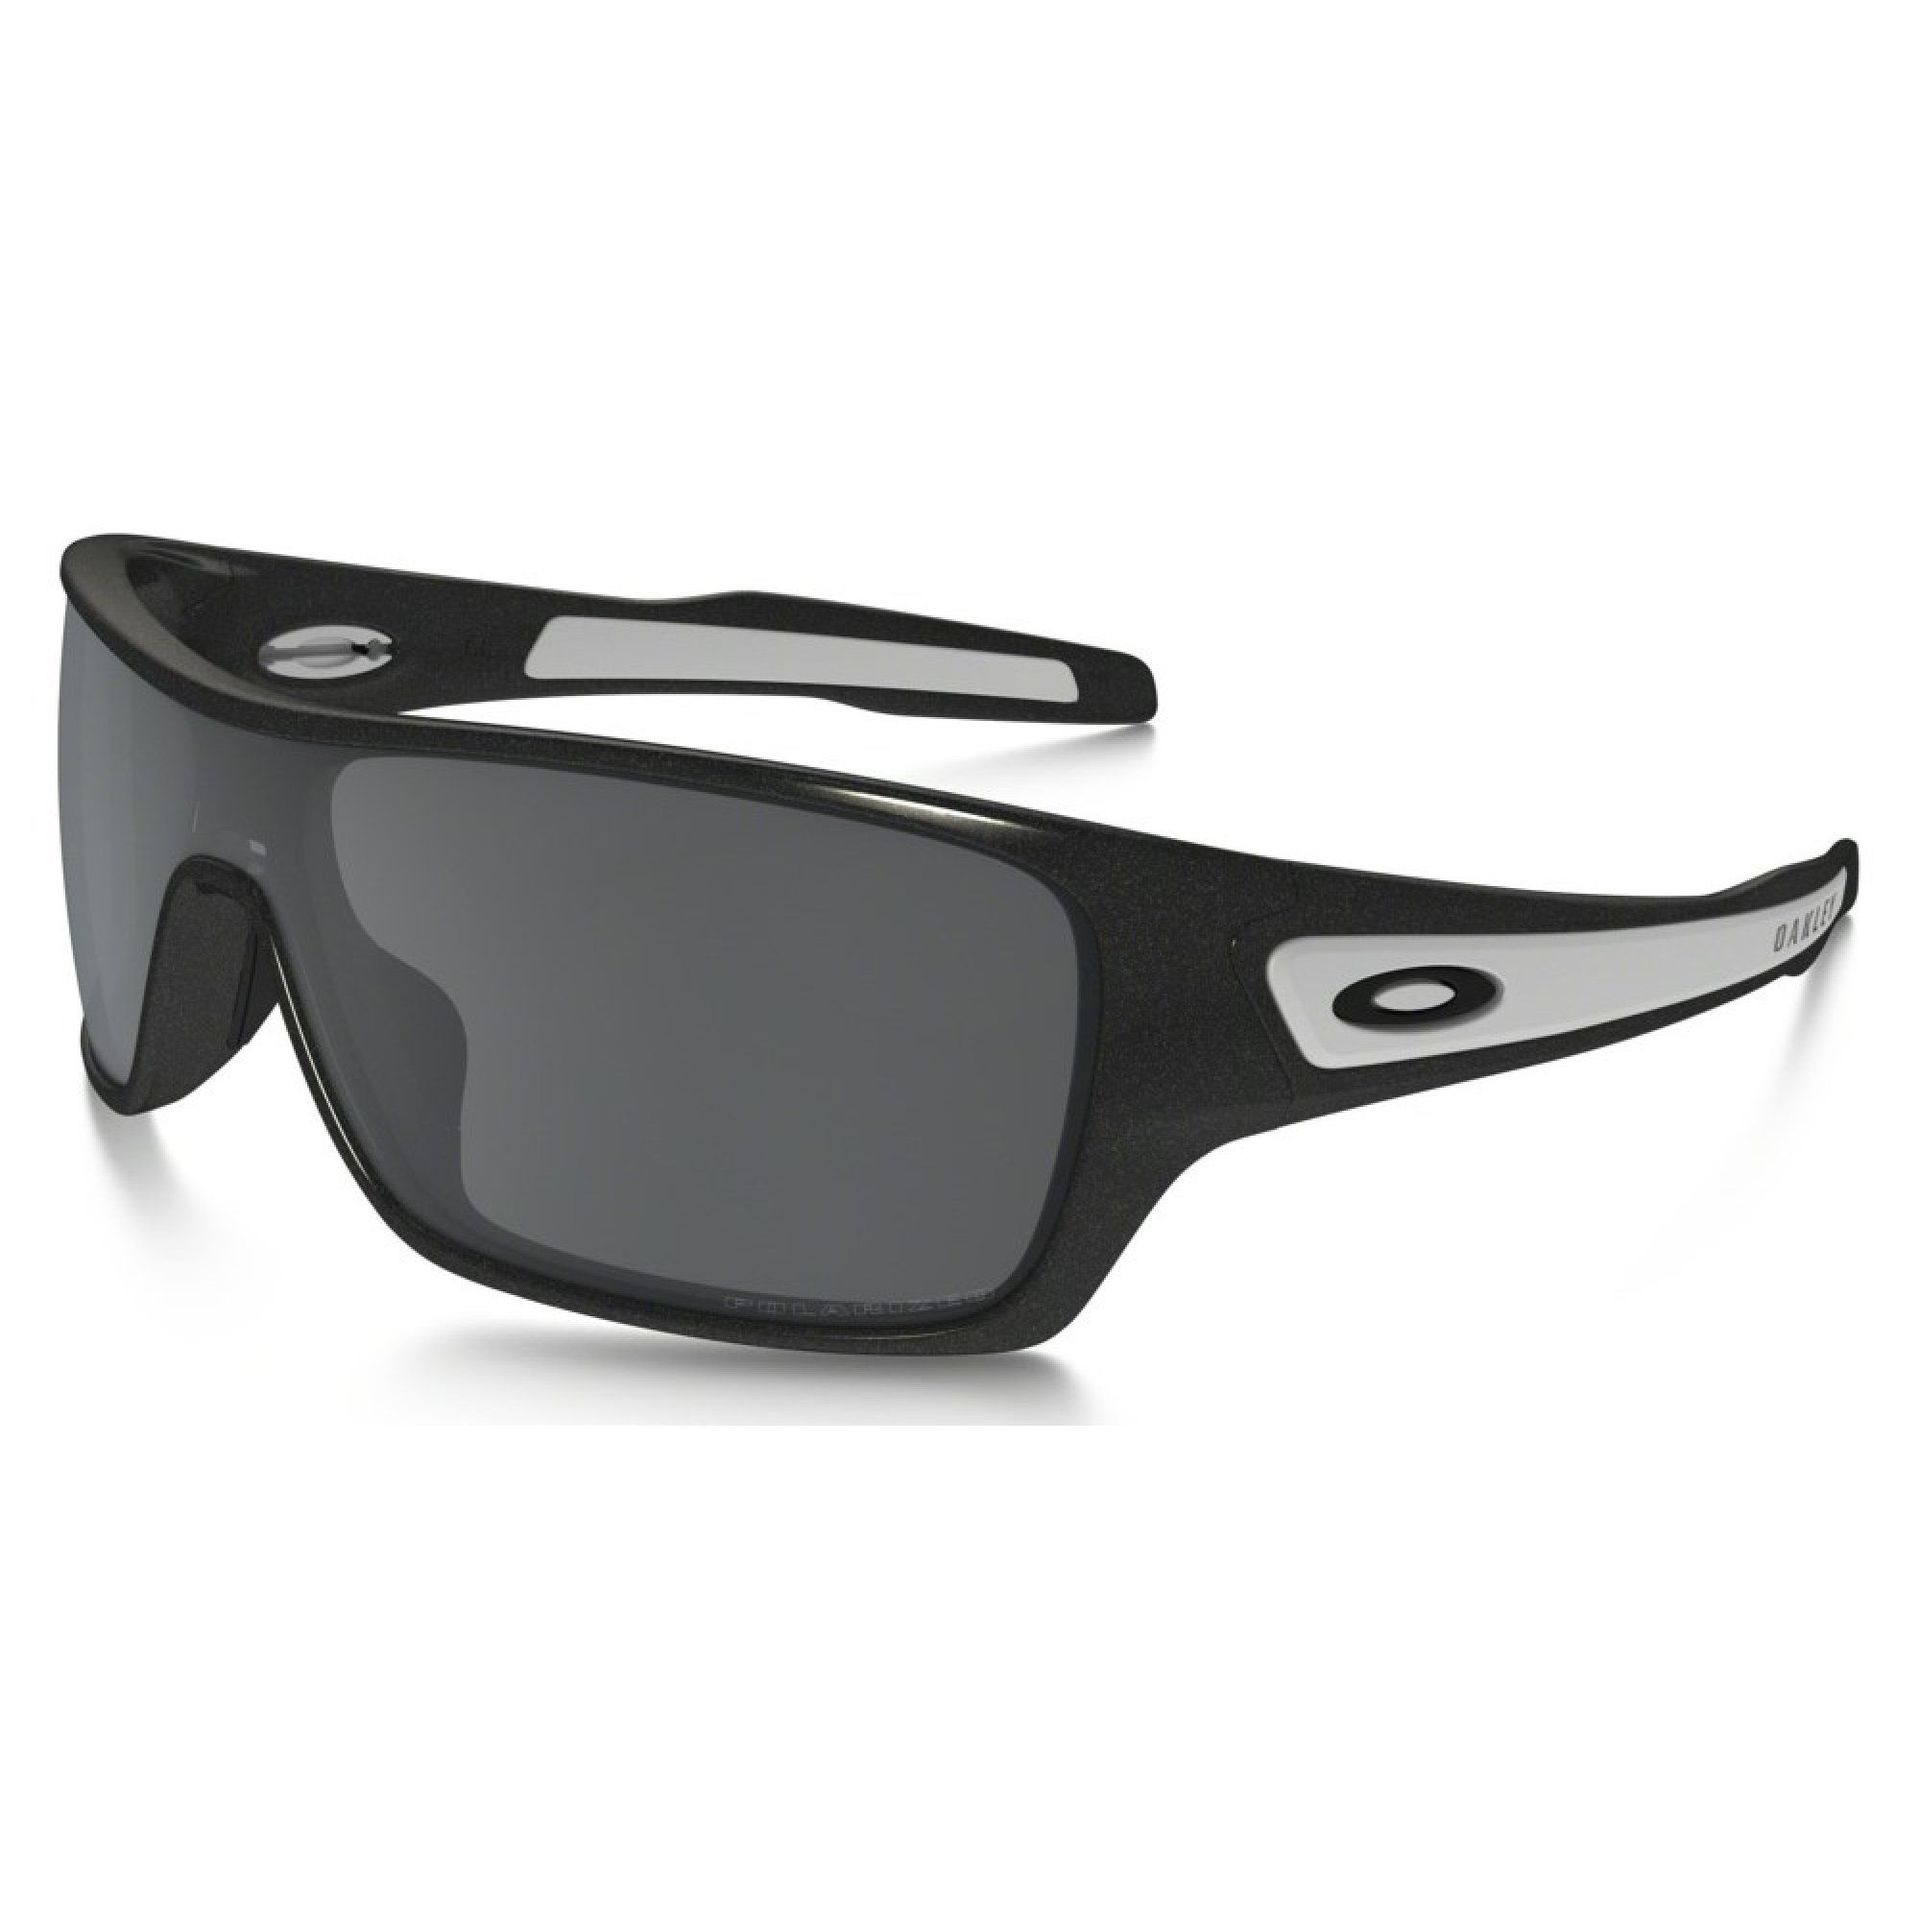 OKULARY OAKLEY TURBINE ROTOR POLARIZED GRANITE I